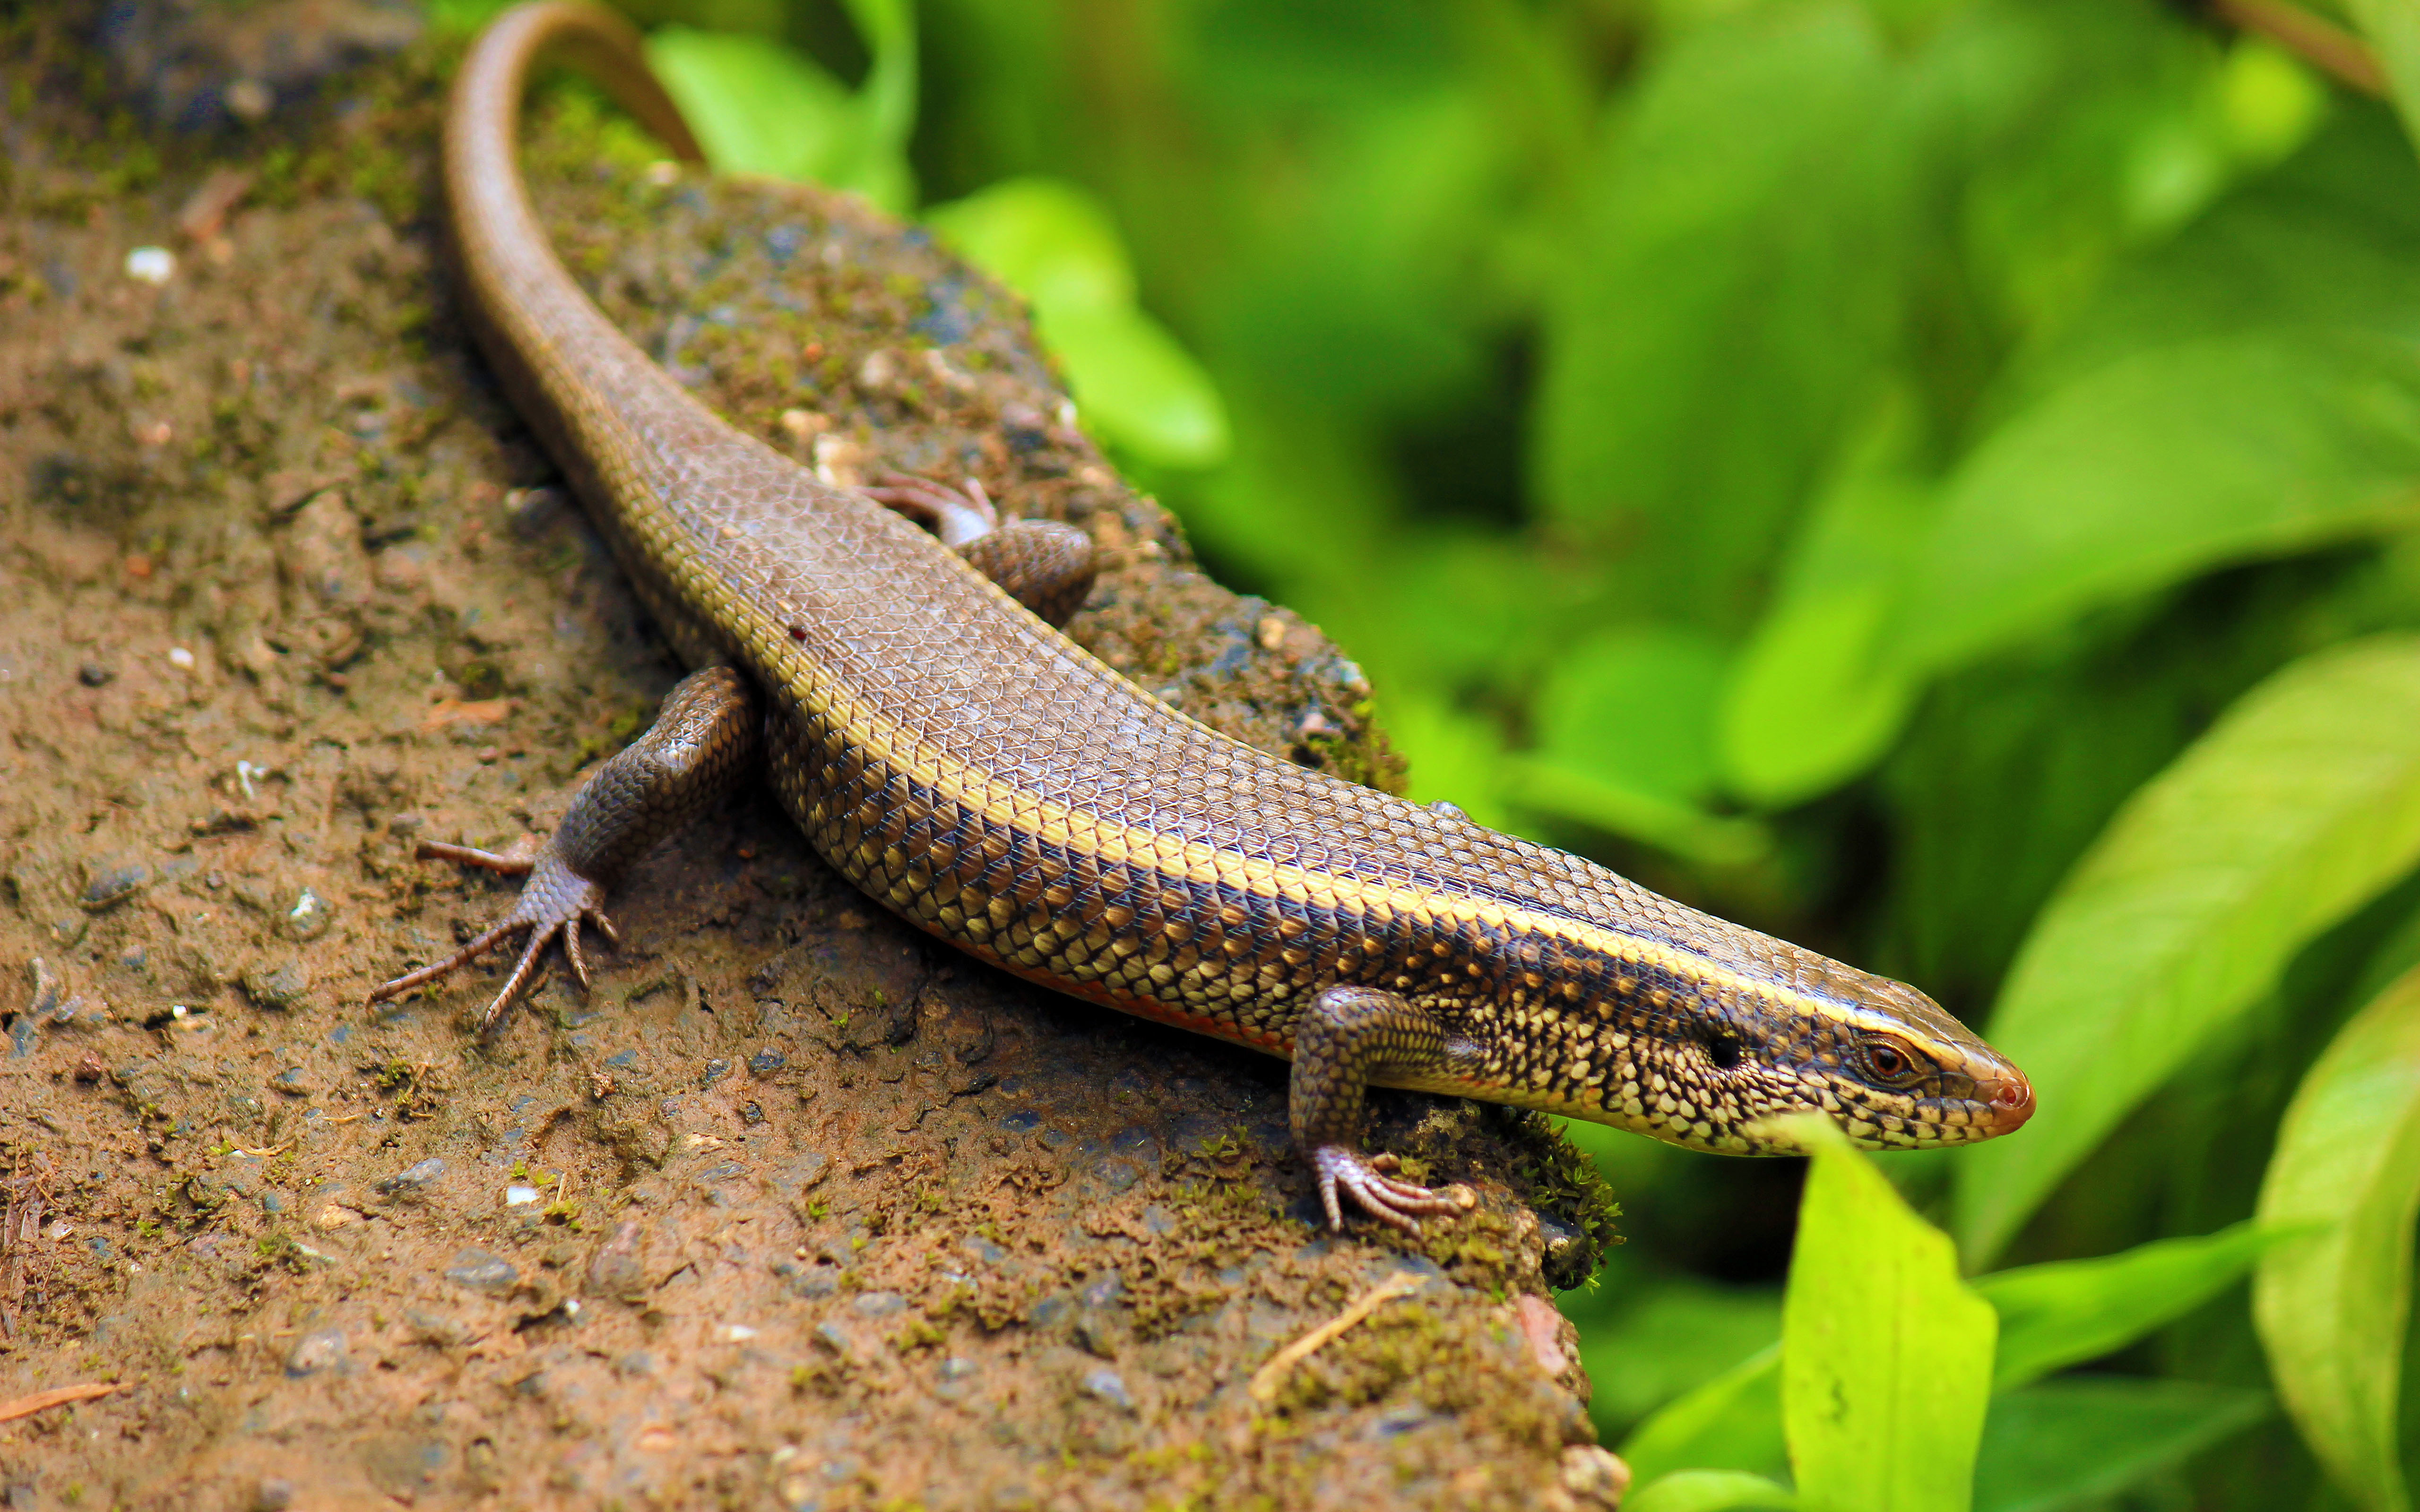 What Type Of Skink Looks Like A Snyder But Has A Different